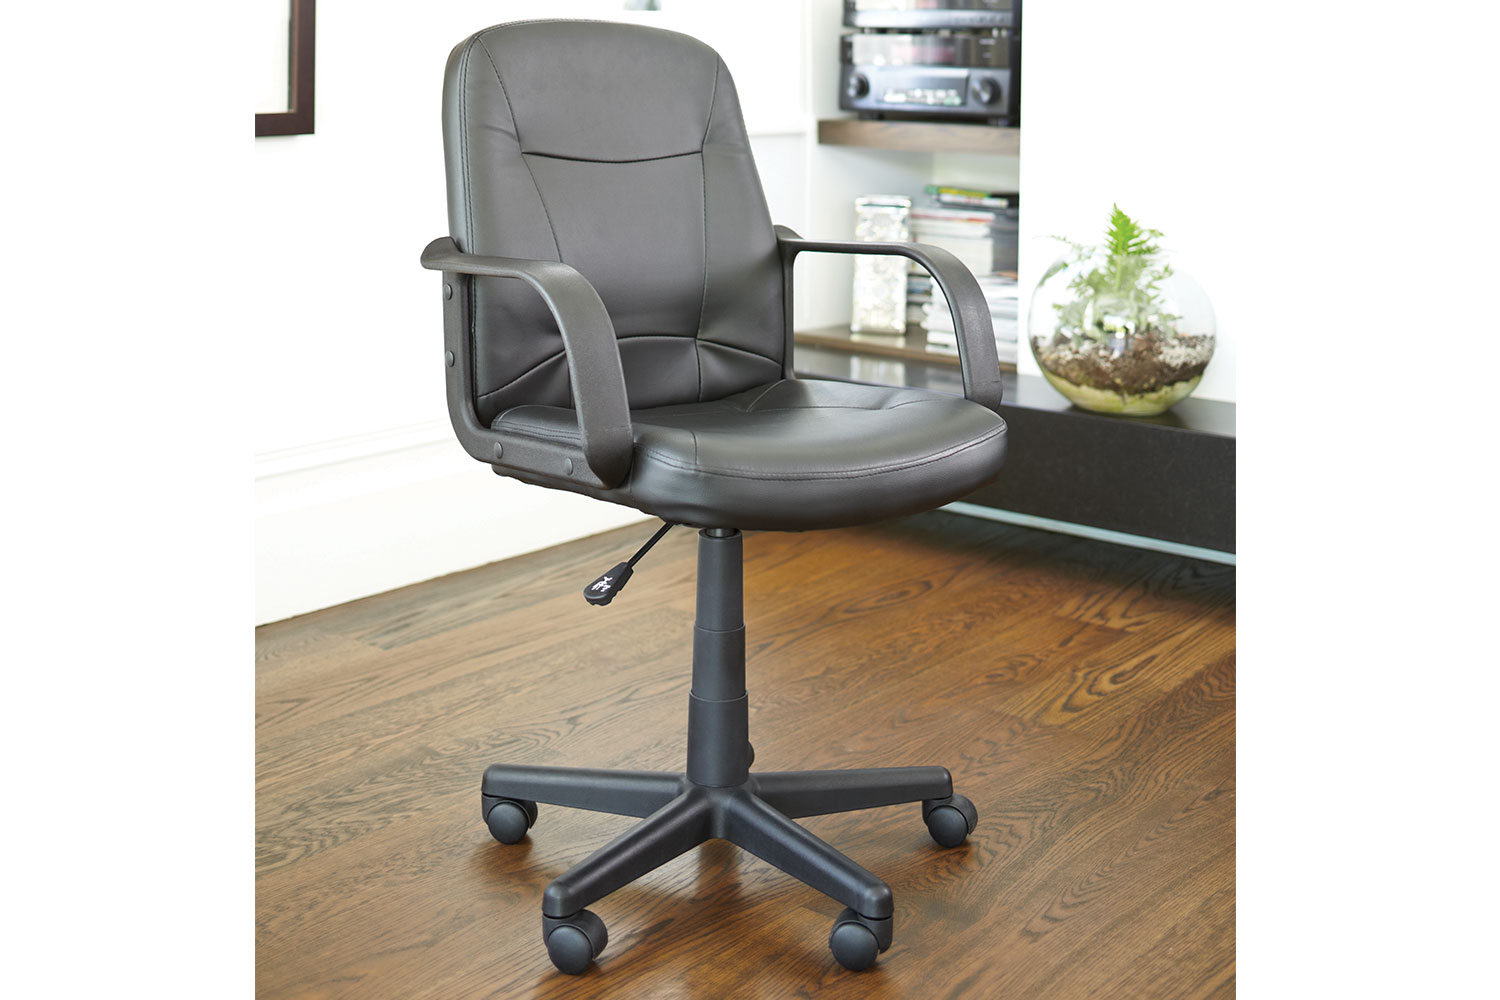 ergonomic chair harvey norman barrel table and chairs xavier office black new zealand